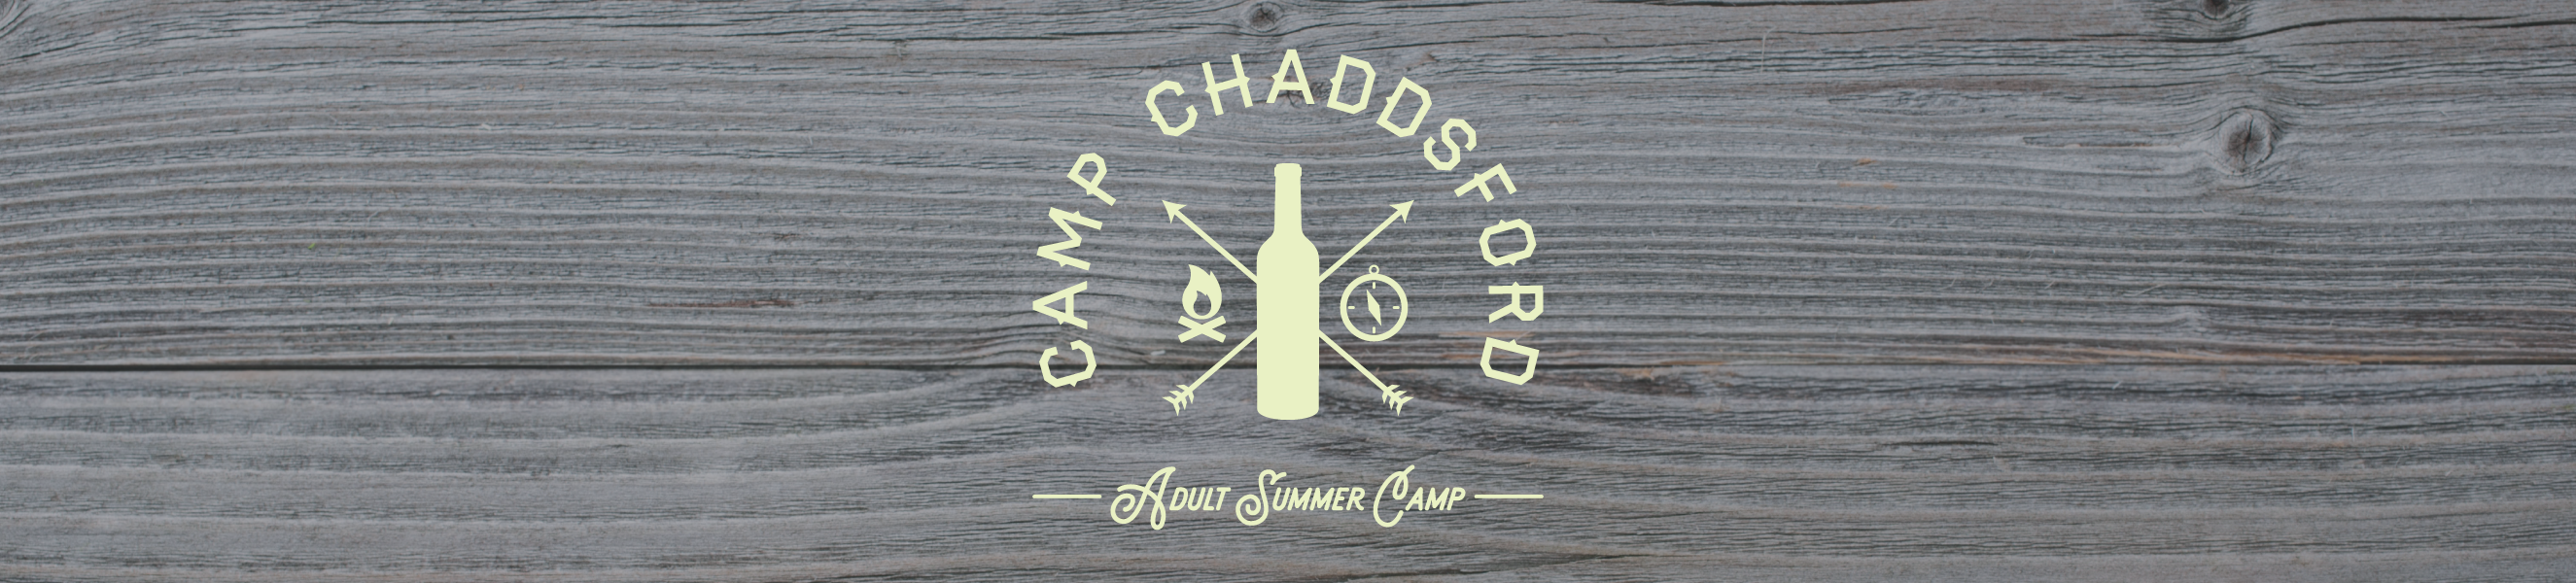 Chaddsford Winery Hosts Third Annual Adult Wine Camp